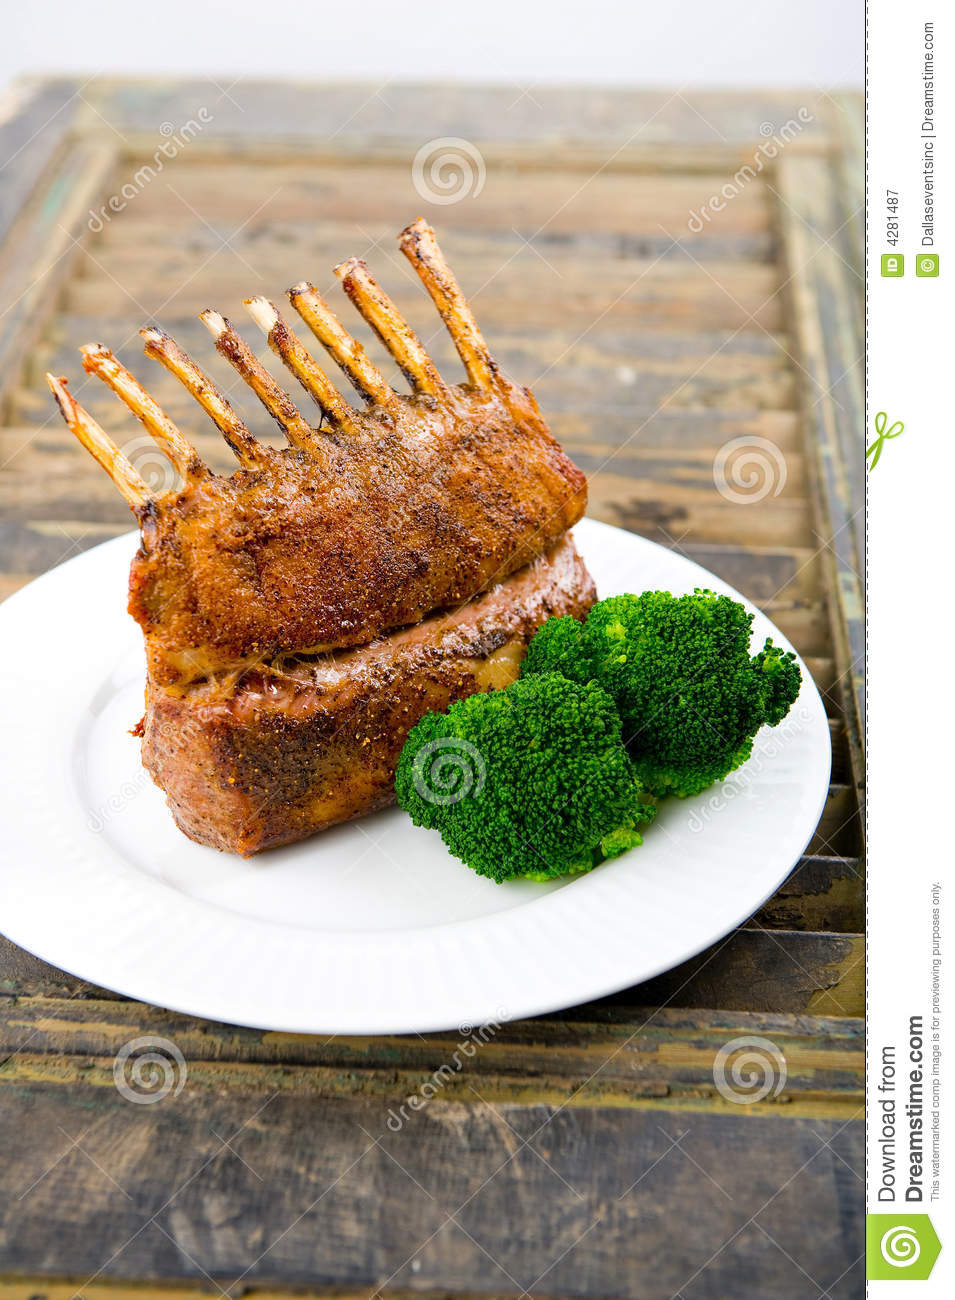 Roasted Rack of Lamb herb crusted on a white plate.